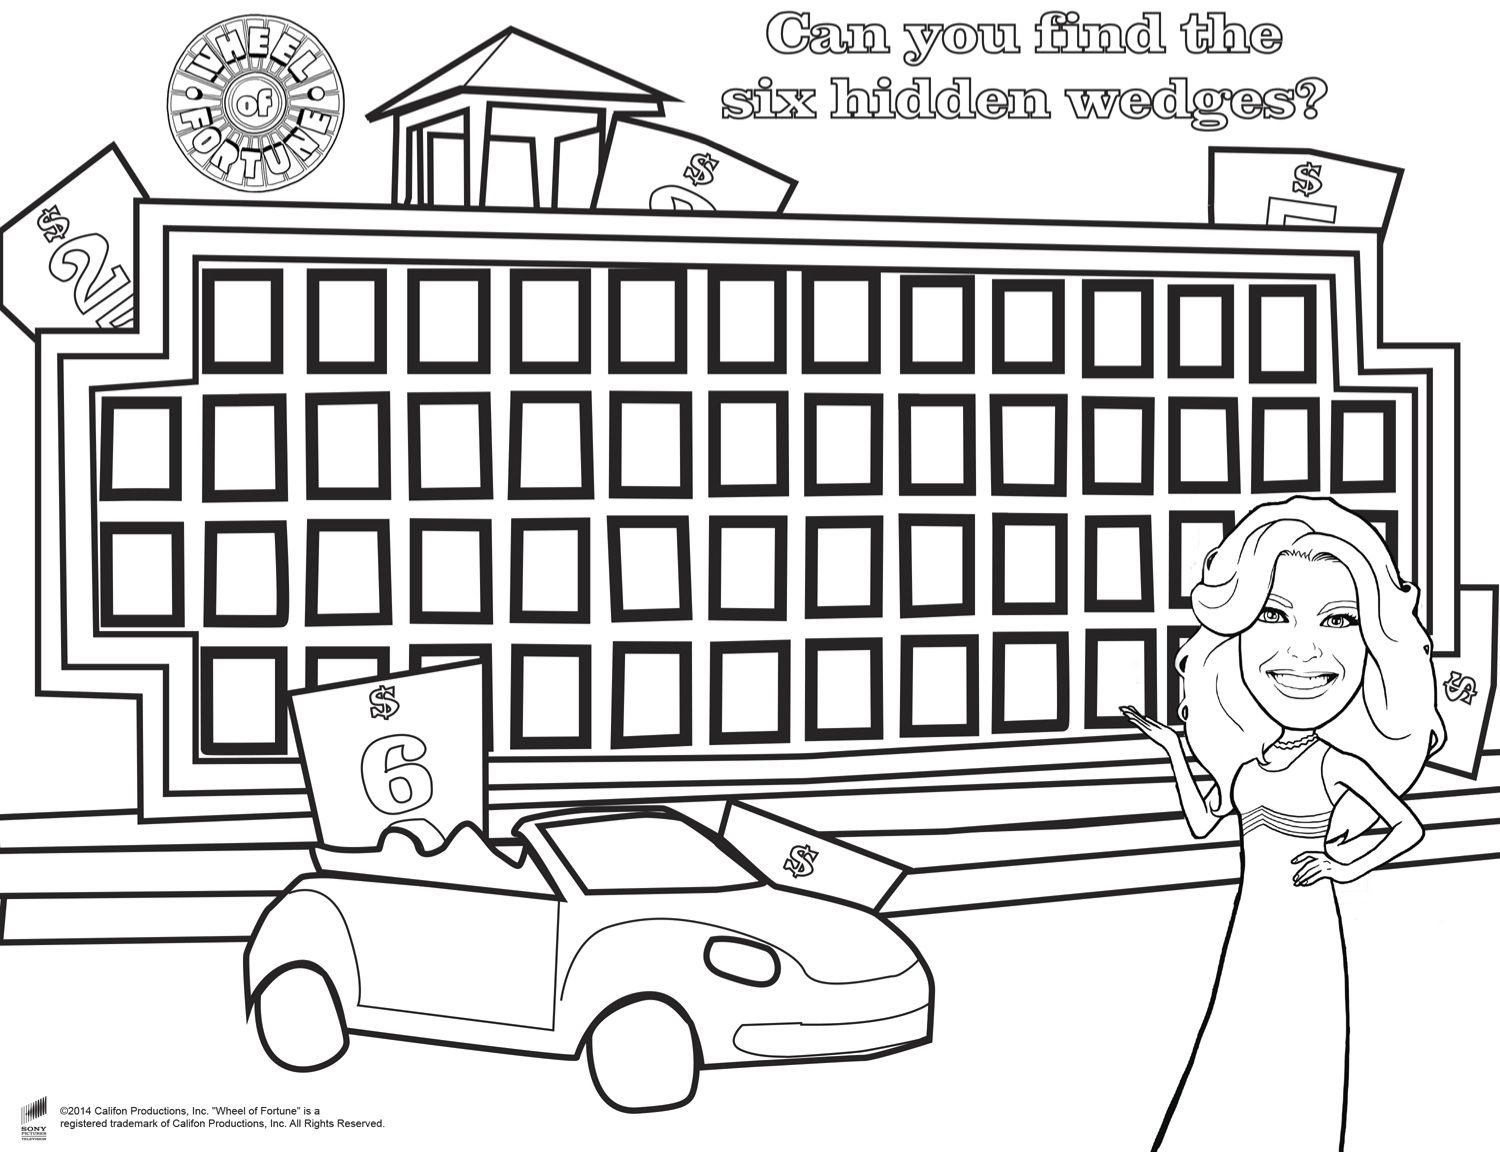 vanna coloring page we all know that